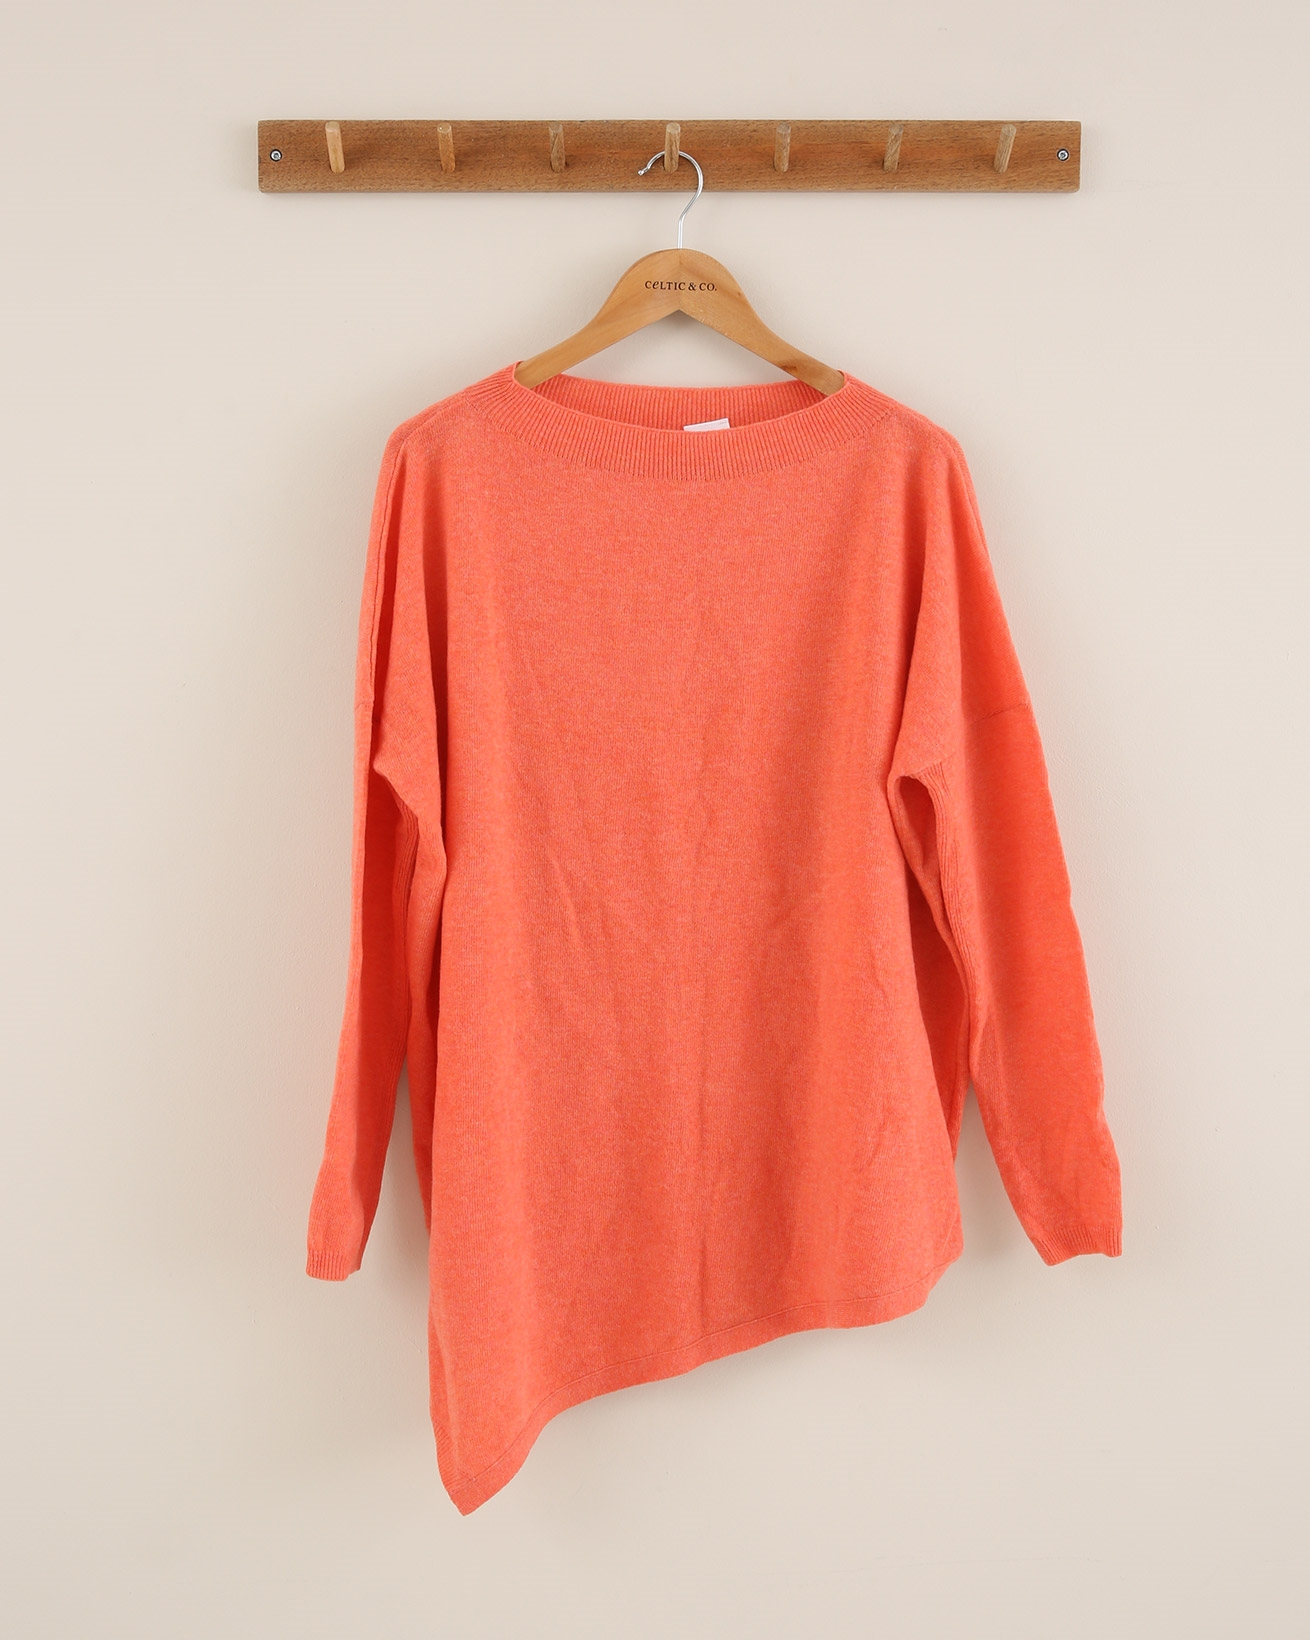 Geelong Asymetric Tunic - Size Small - Coral - 1838